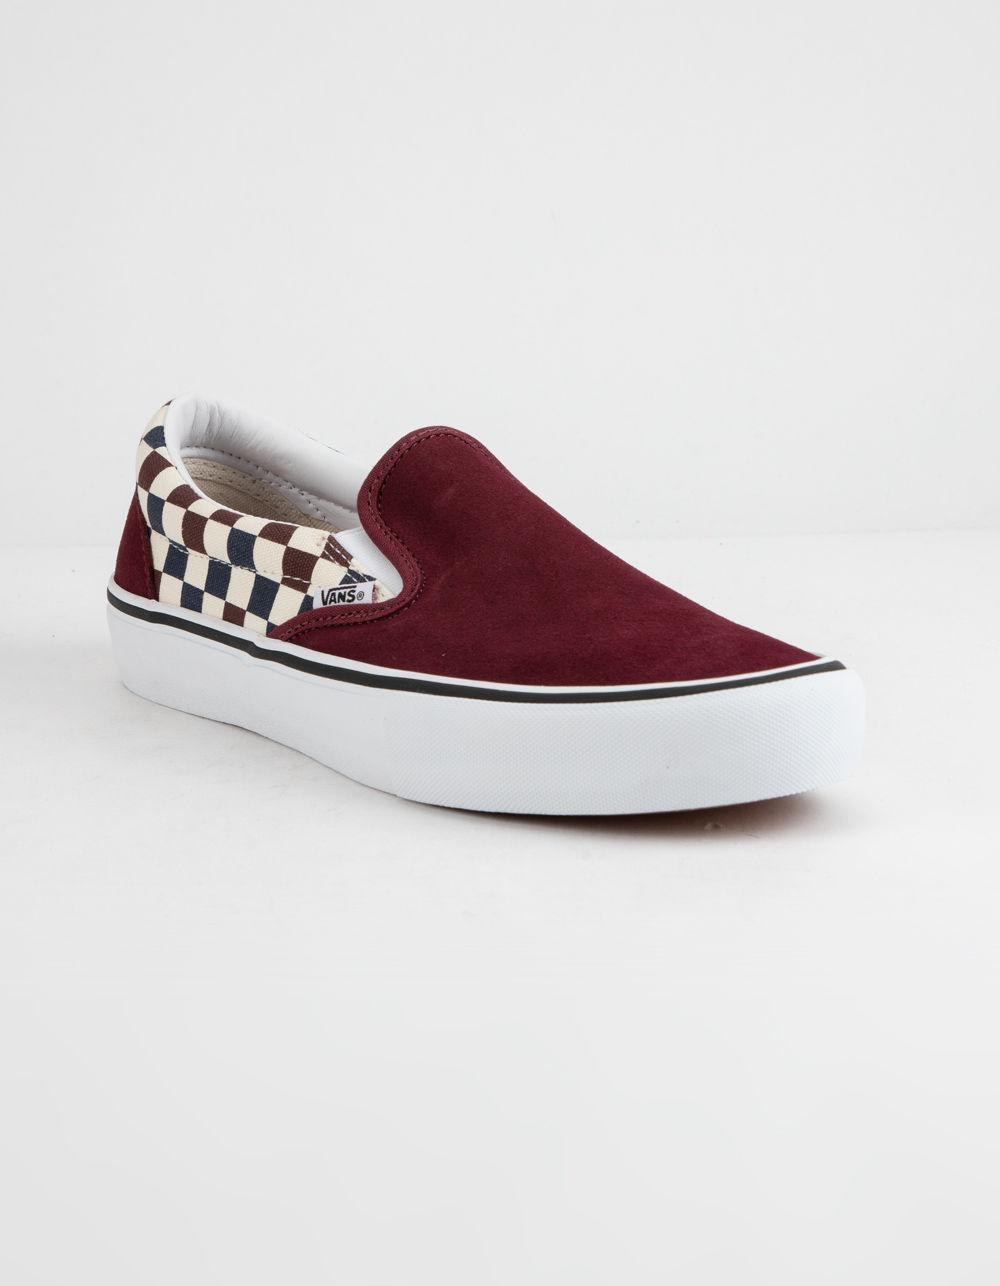 Lyst - Vans Checkerboard Slip-on Pro Port Royal Royal Shoes in Red c2cc7880a